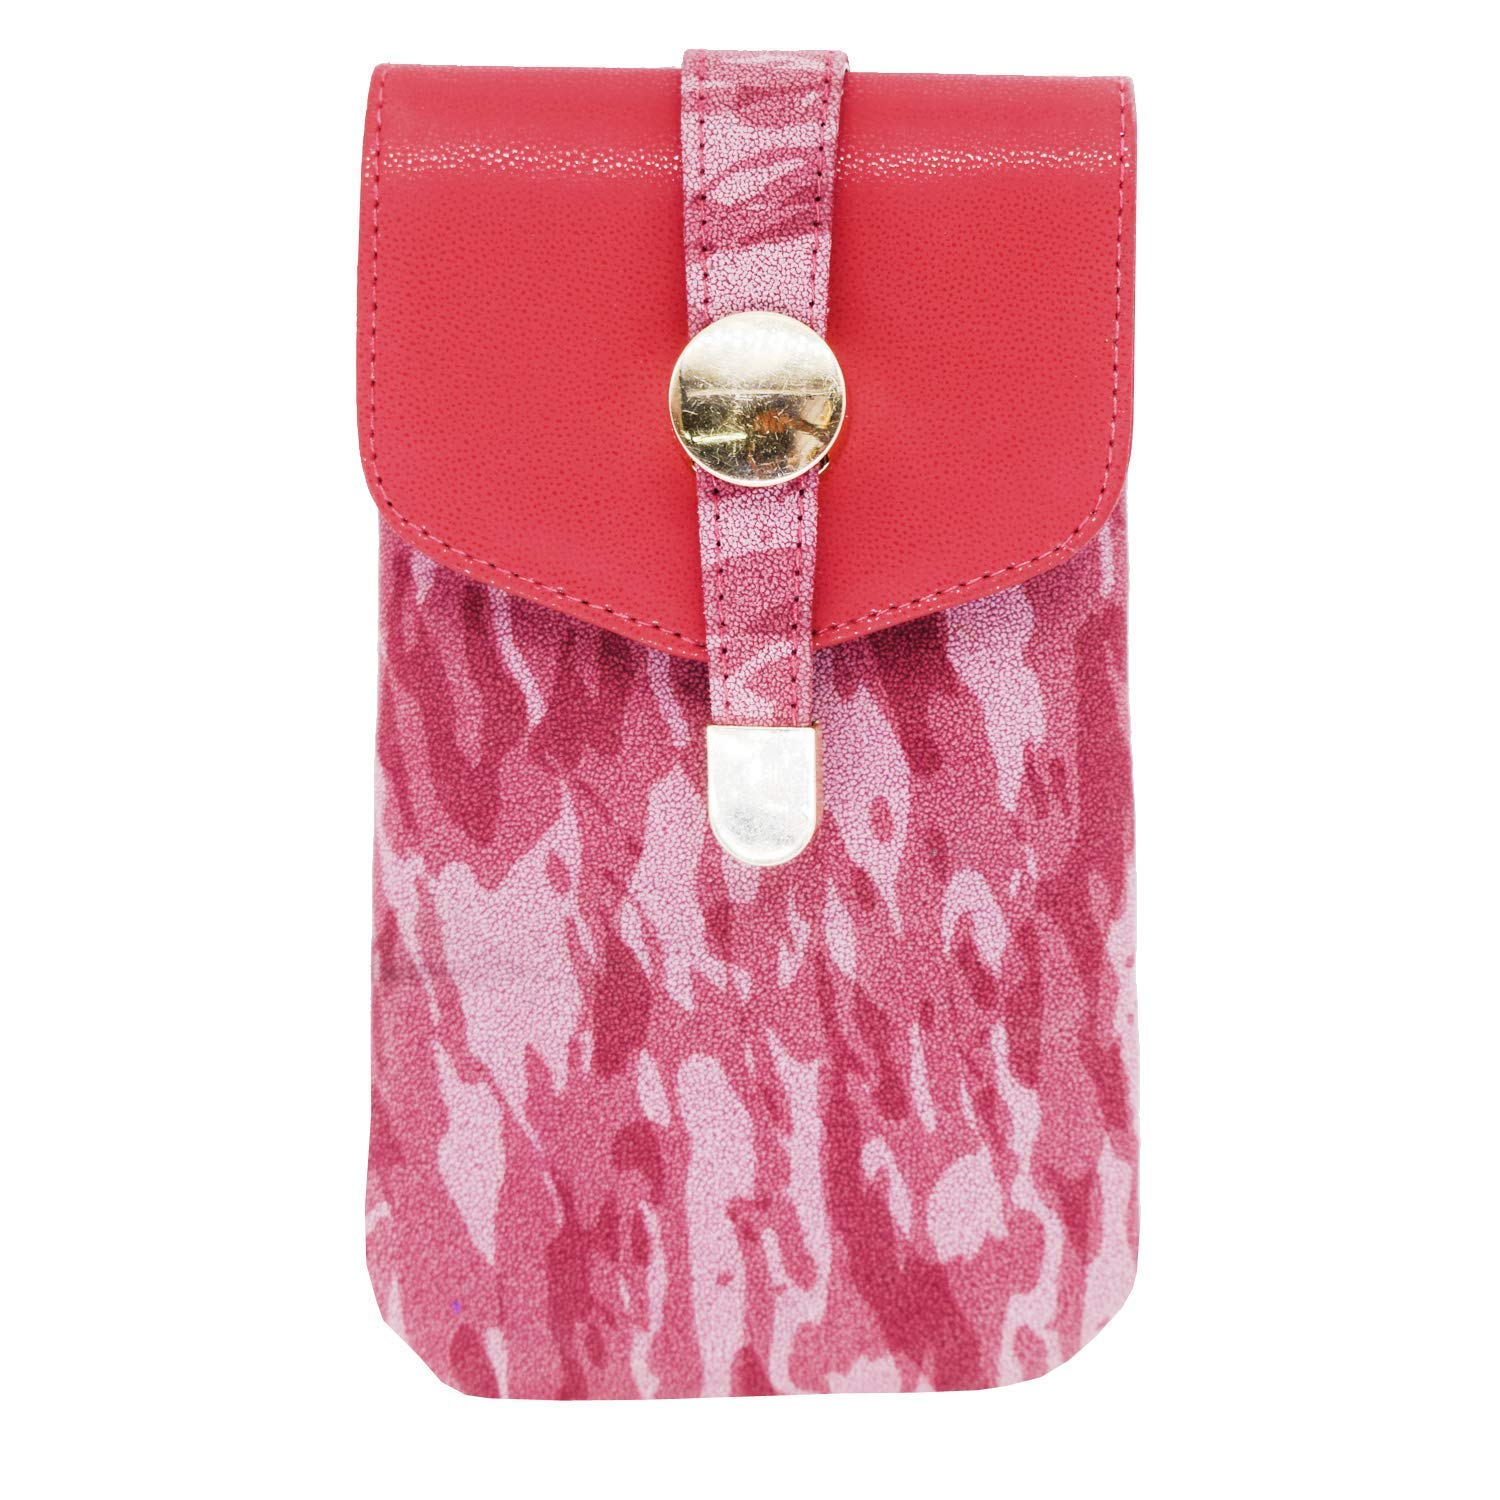 Leather Mobile Pouch with Waist Clip (Red) - Bagaholics Gift